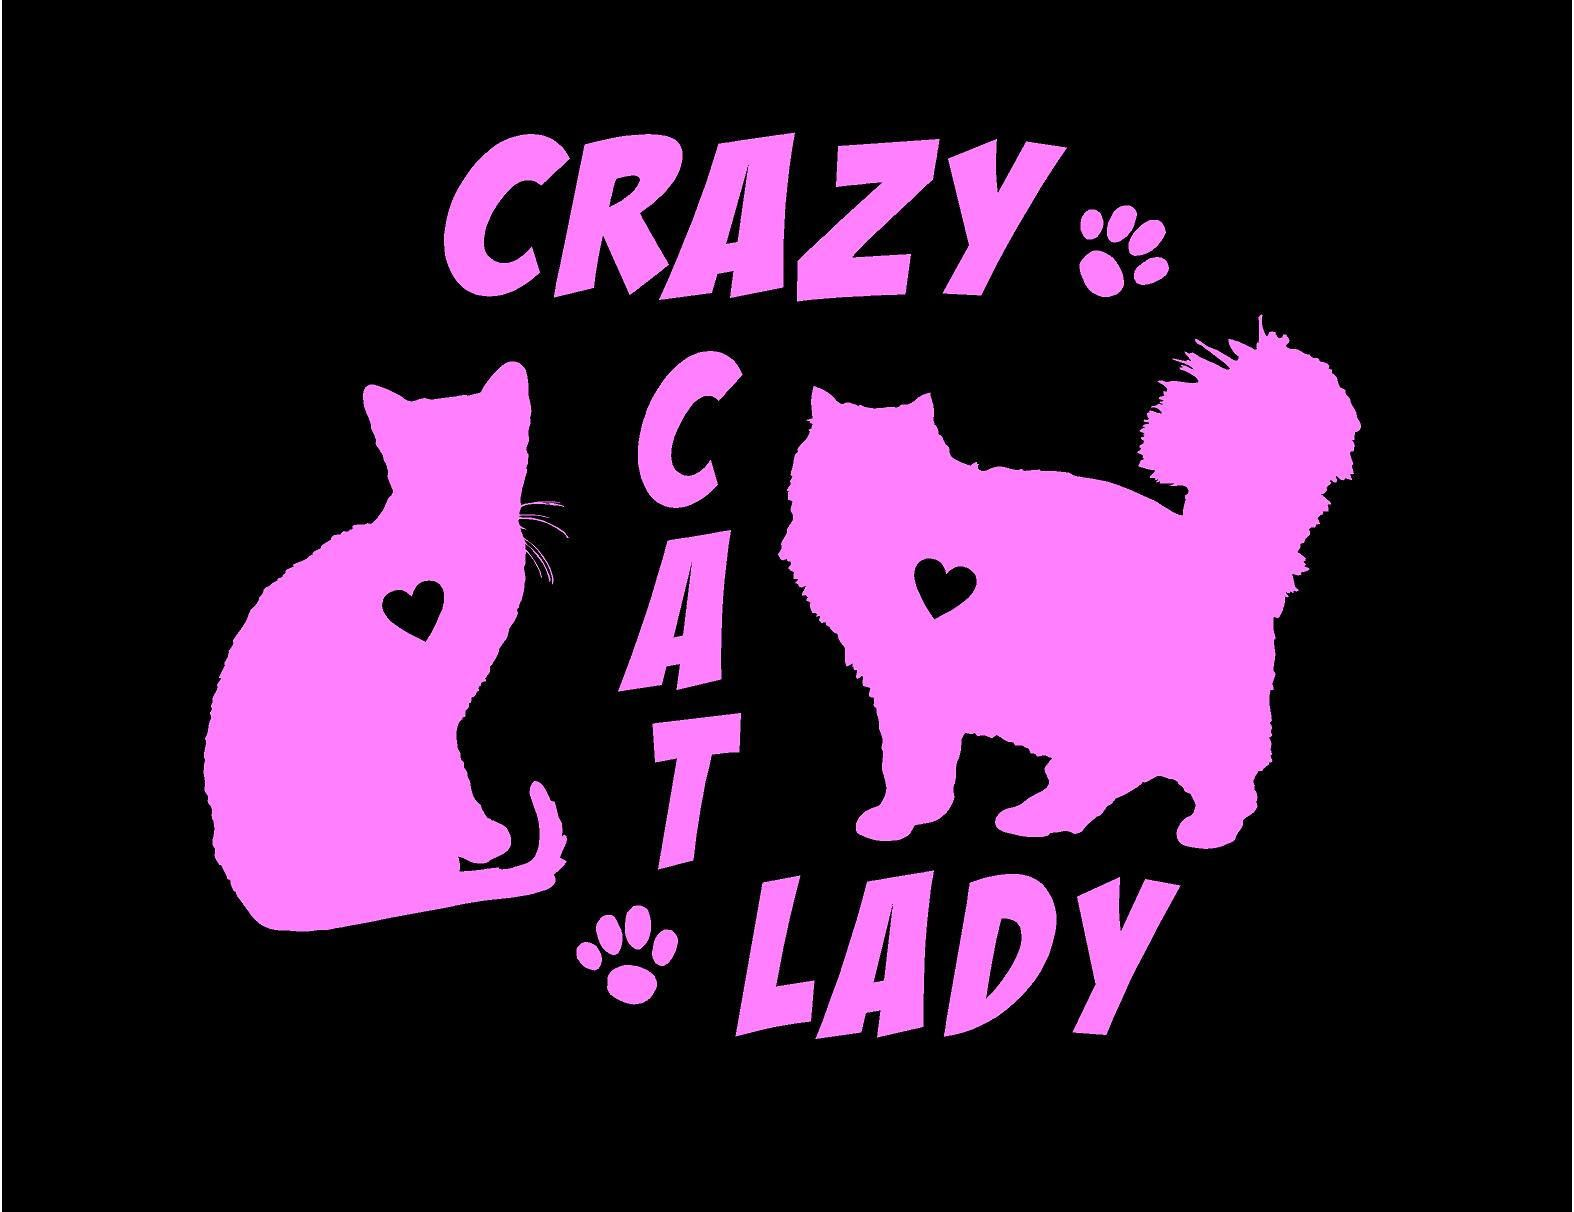 Crazy Cat Lady Decal Car Decal Vinyl Decal Cat Lady Decal Sticker Custom Car Vehicle Auto Decal Cat Decals Truck Window Stickers Crazy Cats Cat Decal [ 1212 x 1574 Pixel ]